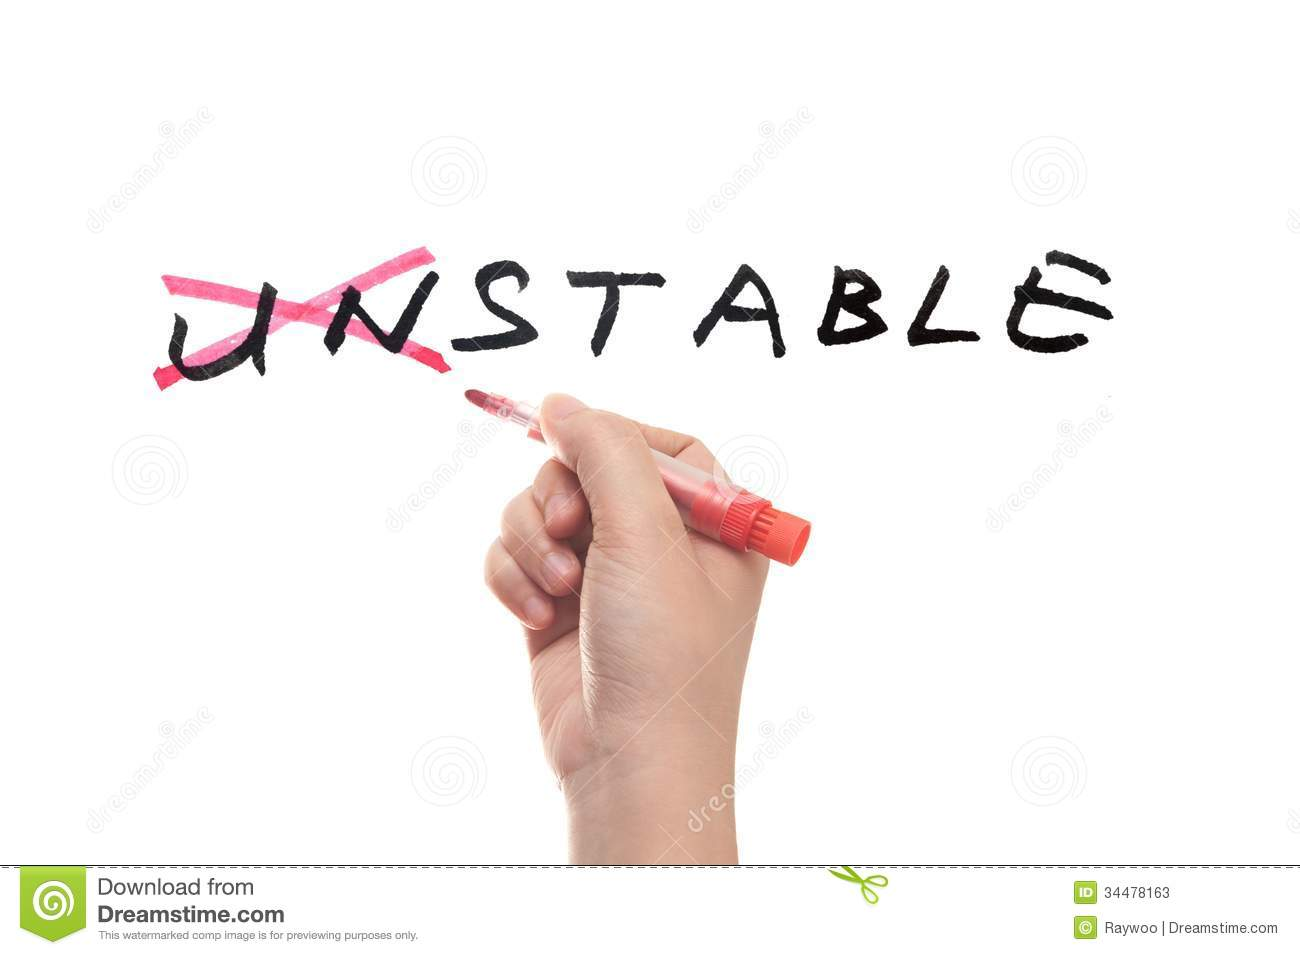 Unstable To Stable Concept Stock Photos.